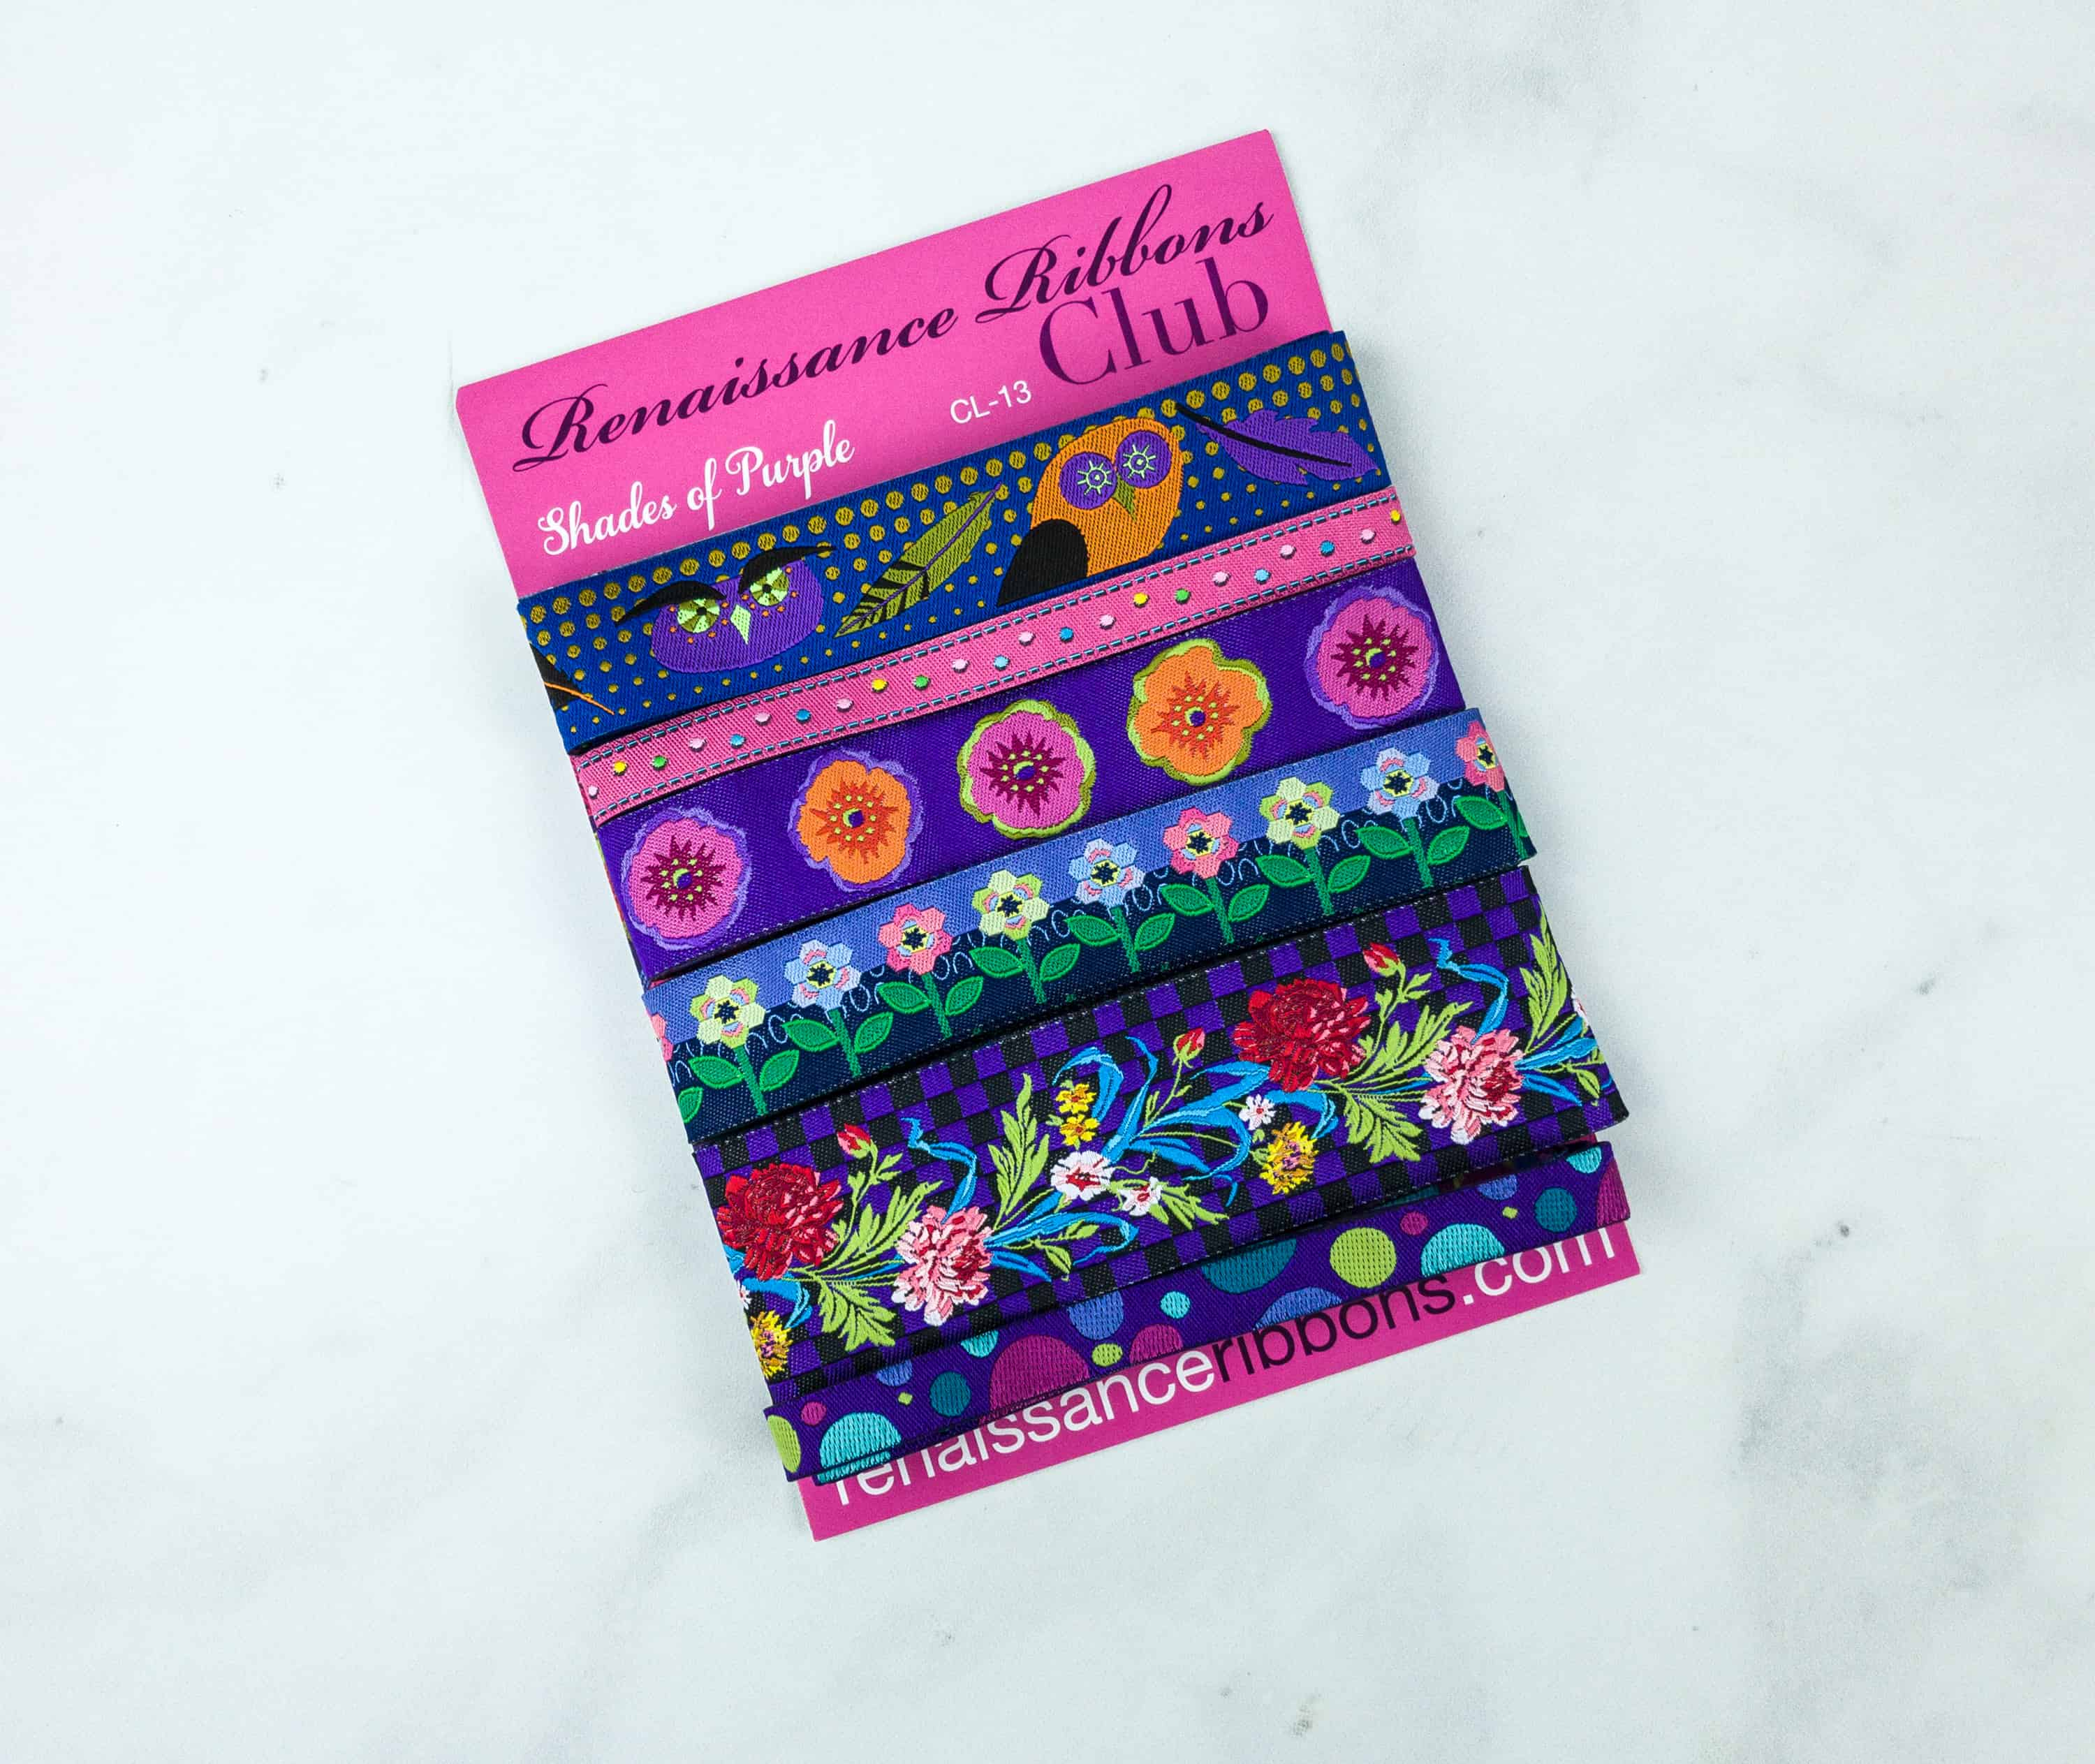 Renaissance Ribbons Ribbon Lovers' Club August 2018 Subscription Box Review + Coupon